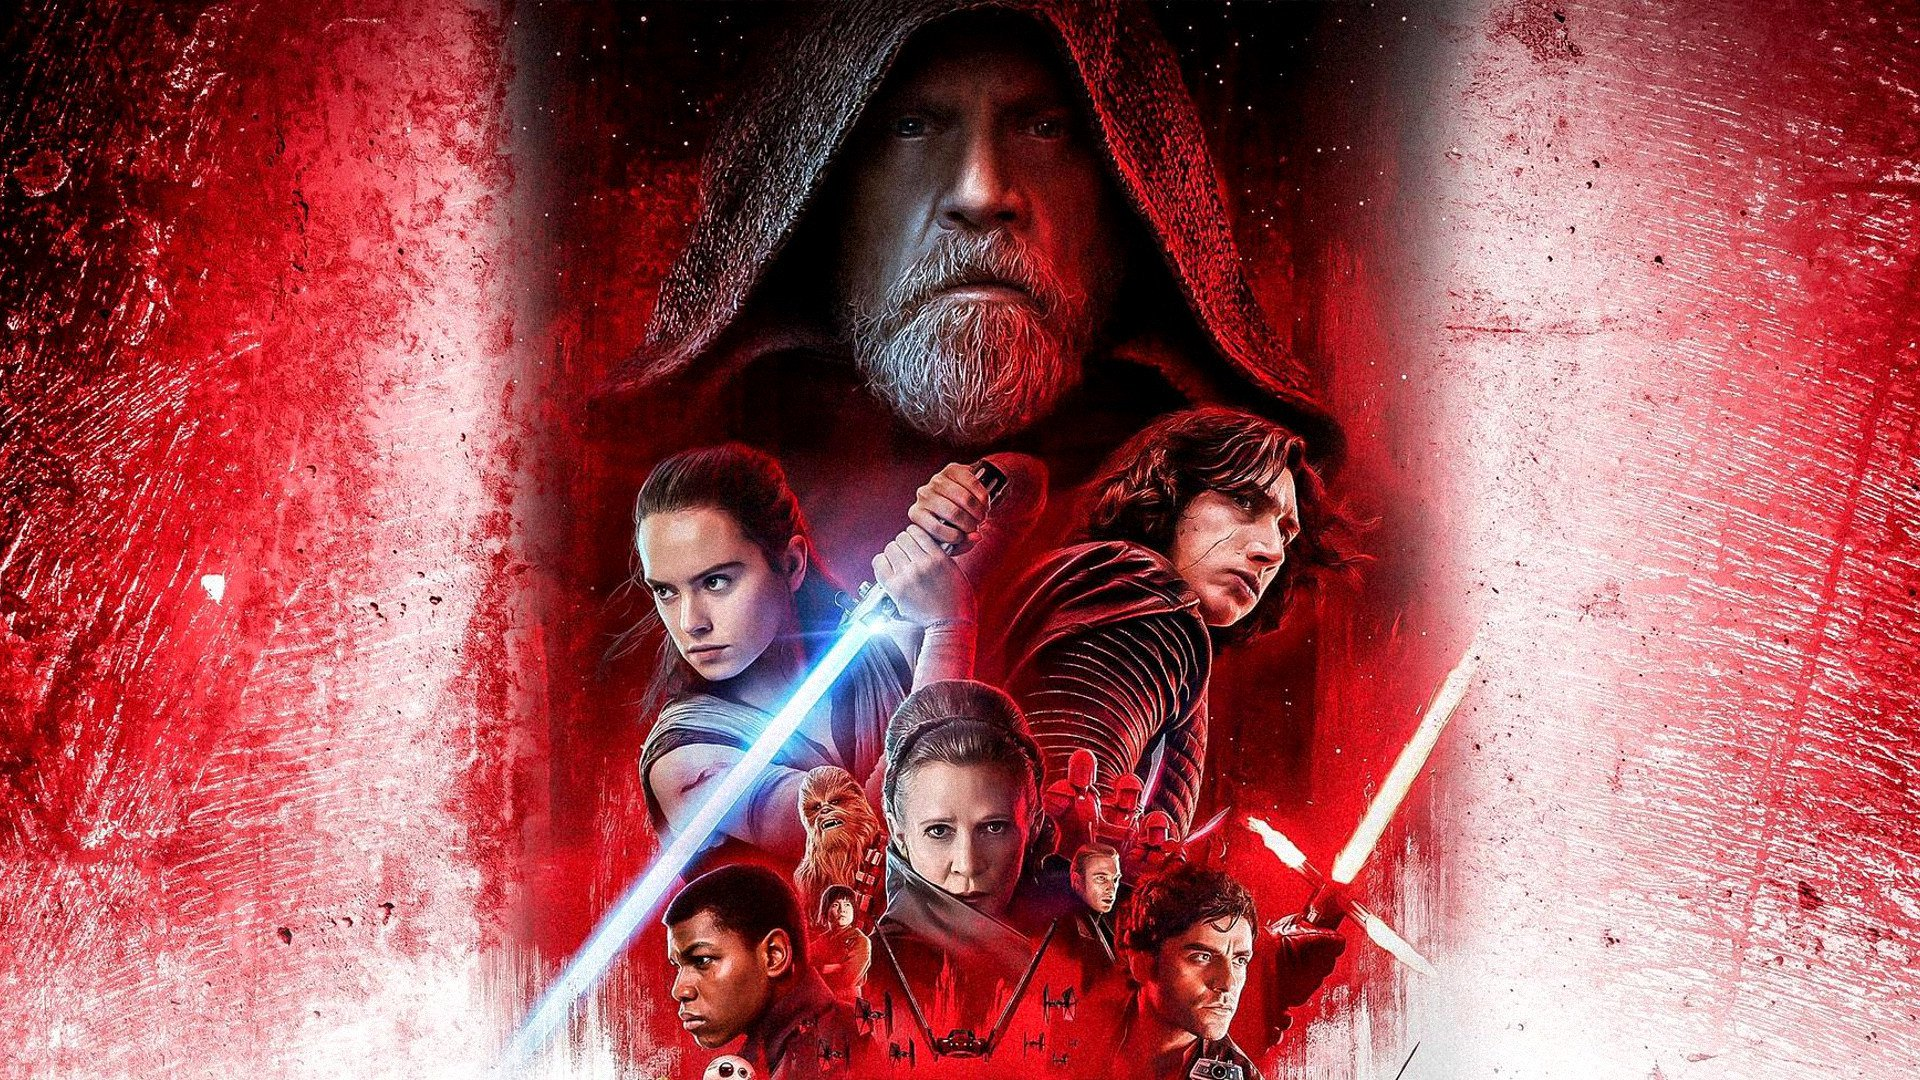 Star Wars The Last Jedi Wallpaper 1920x1080 Posted By Zoey Cunningham